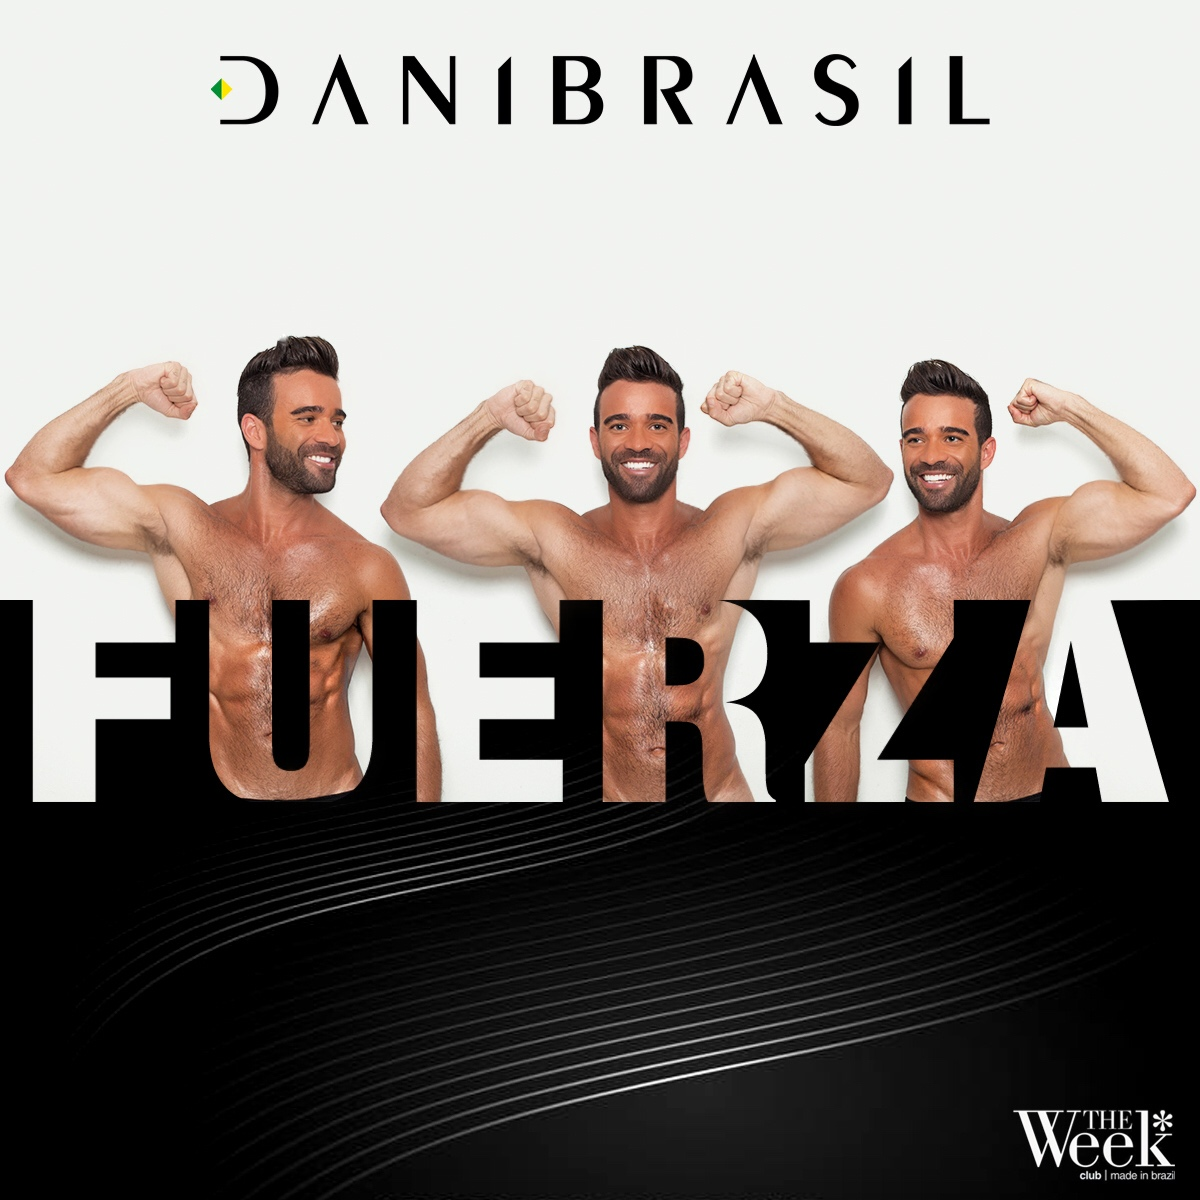 Dani Brasil - FUERZA (The Week Brazil)